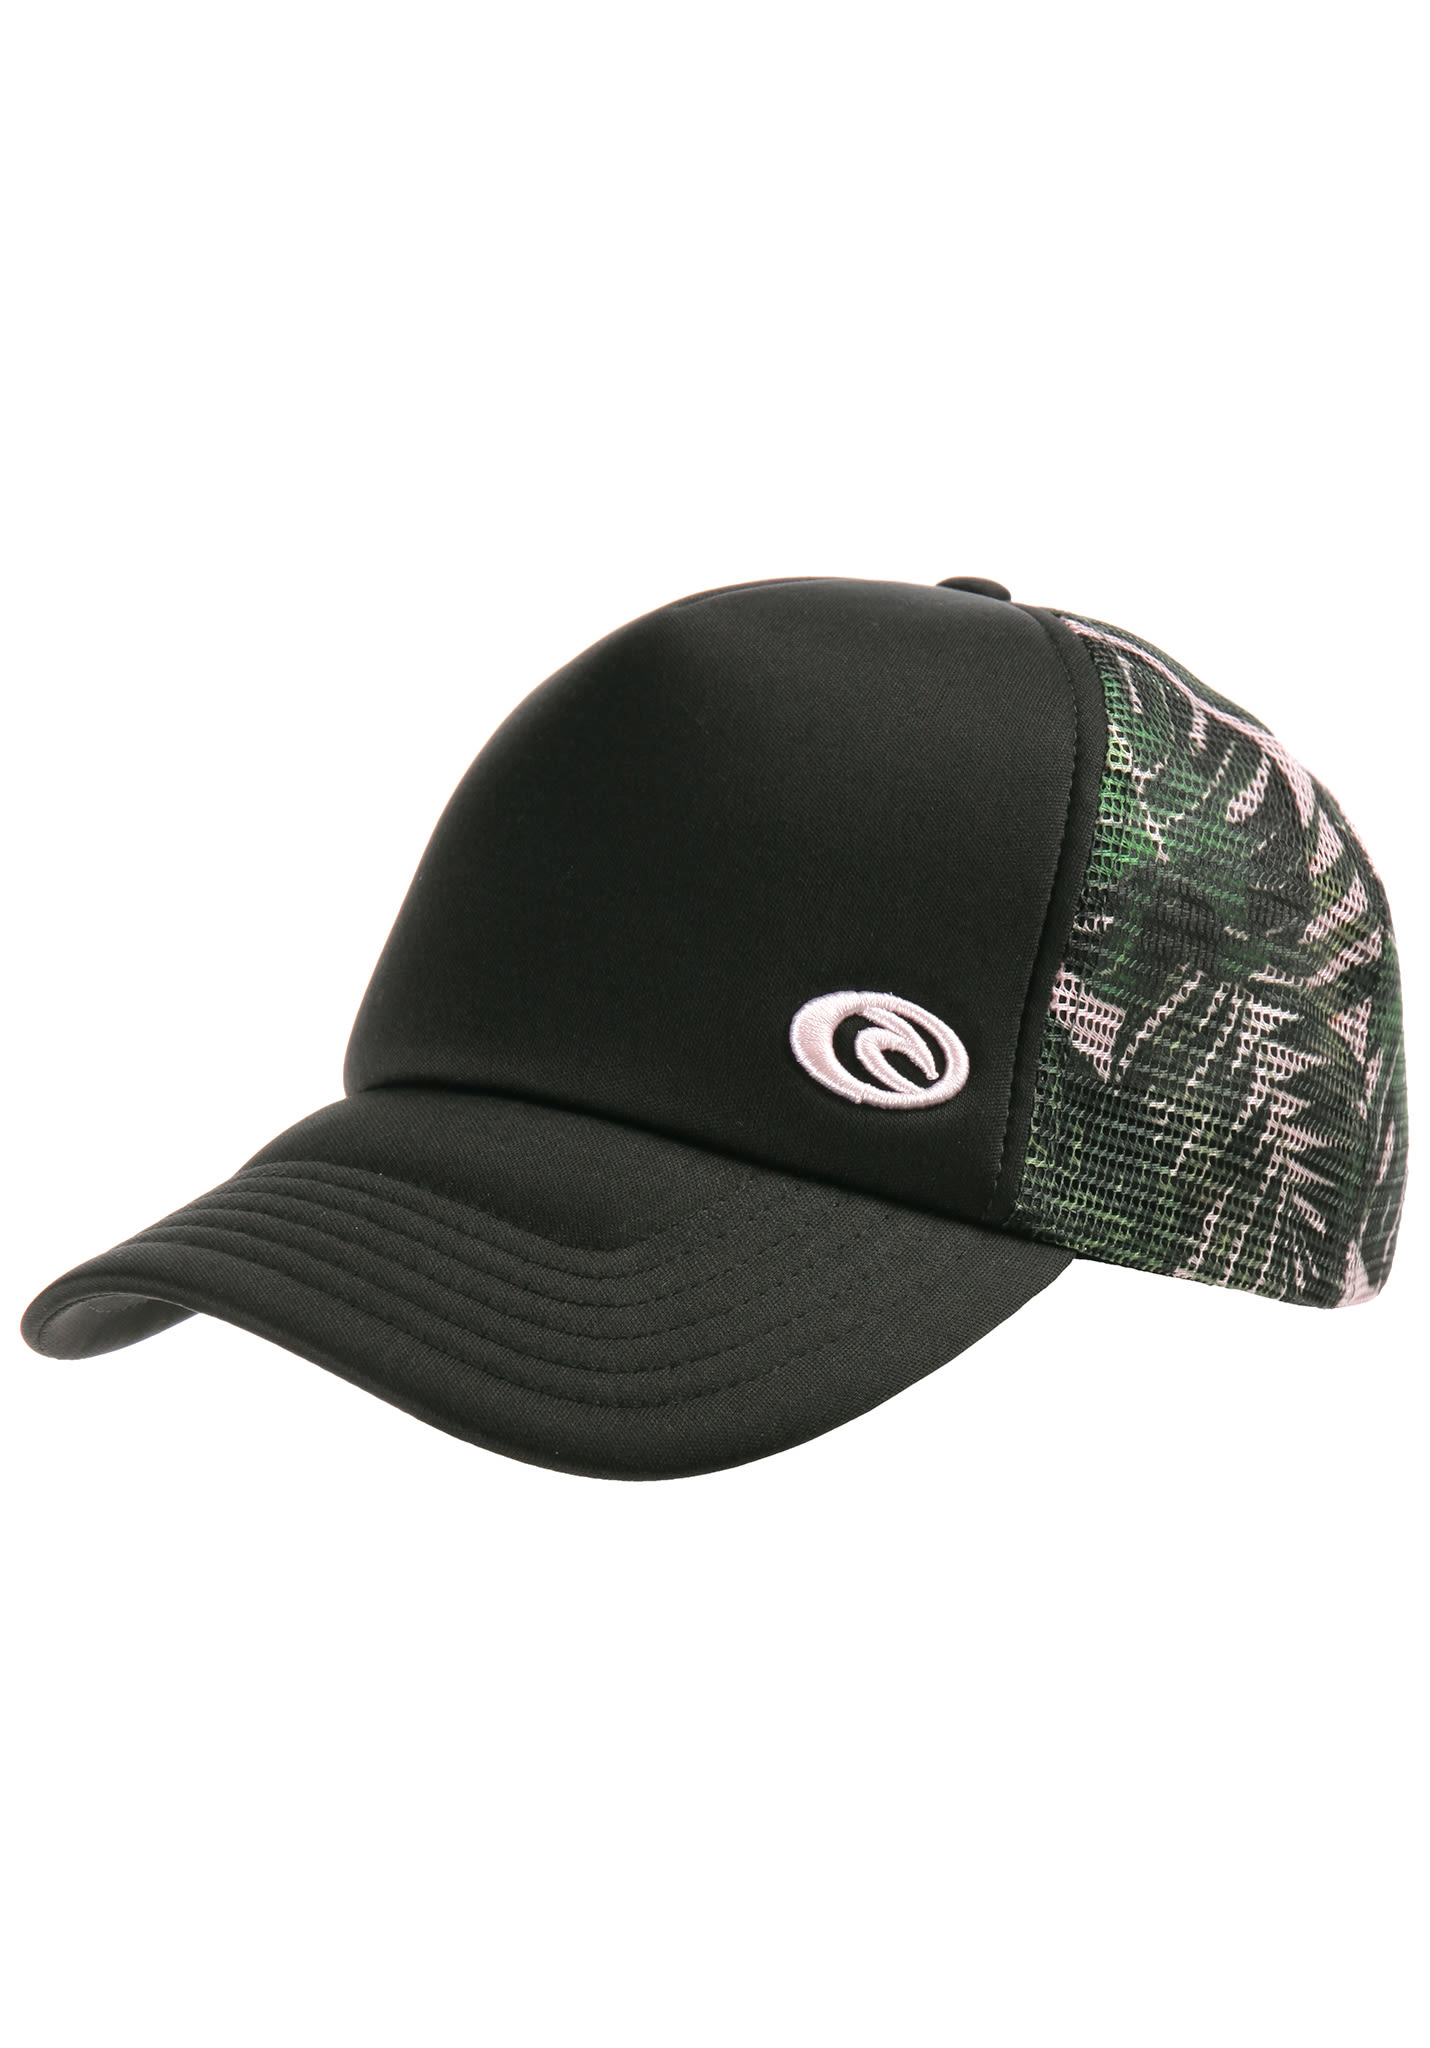 904c54baf61330 Rip Curl Palm Beach - Trucker Cap für Damen - Schwarz - Planet Sports